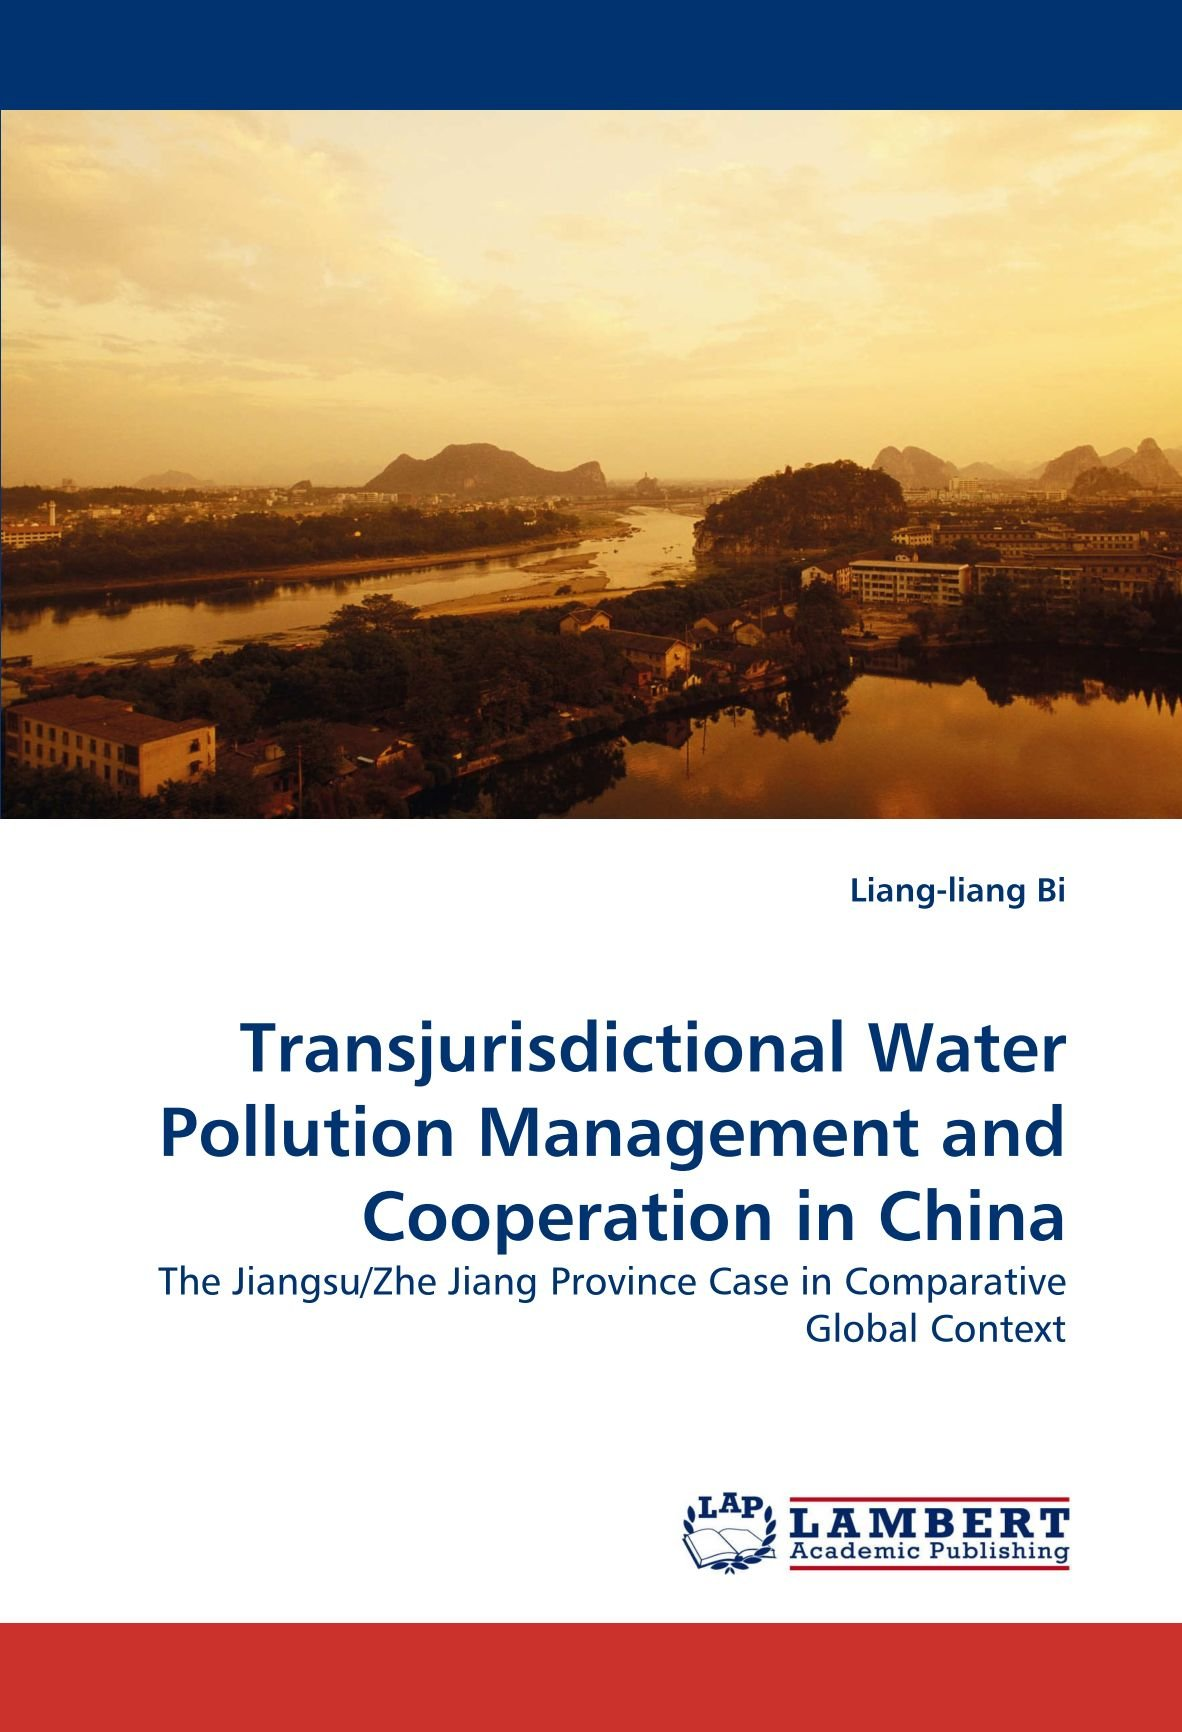 Transjurisdictional Water Pollution Management and Cooperation in China: The Jiangsu/Zhe Jiang Province Case in Comparative Global Context ebook